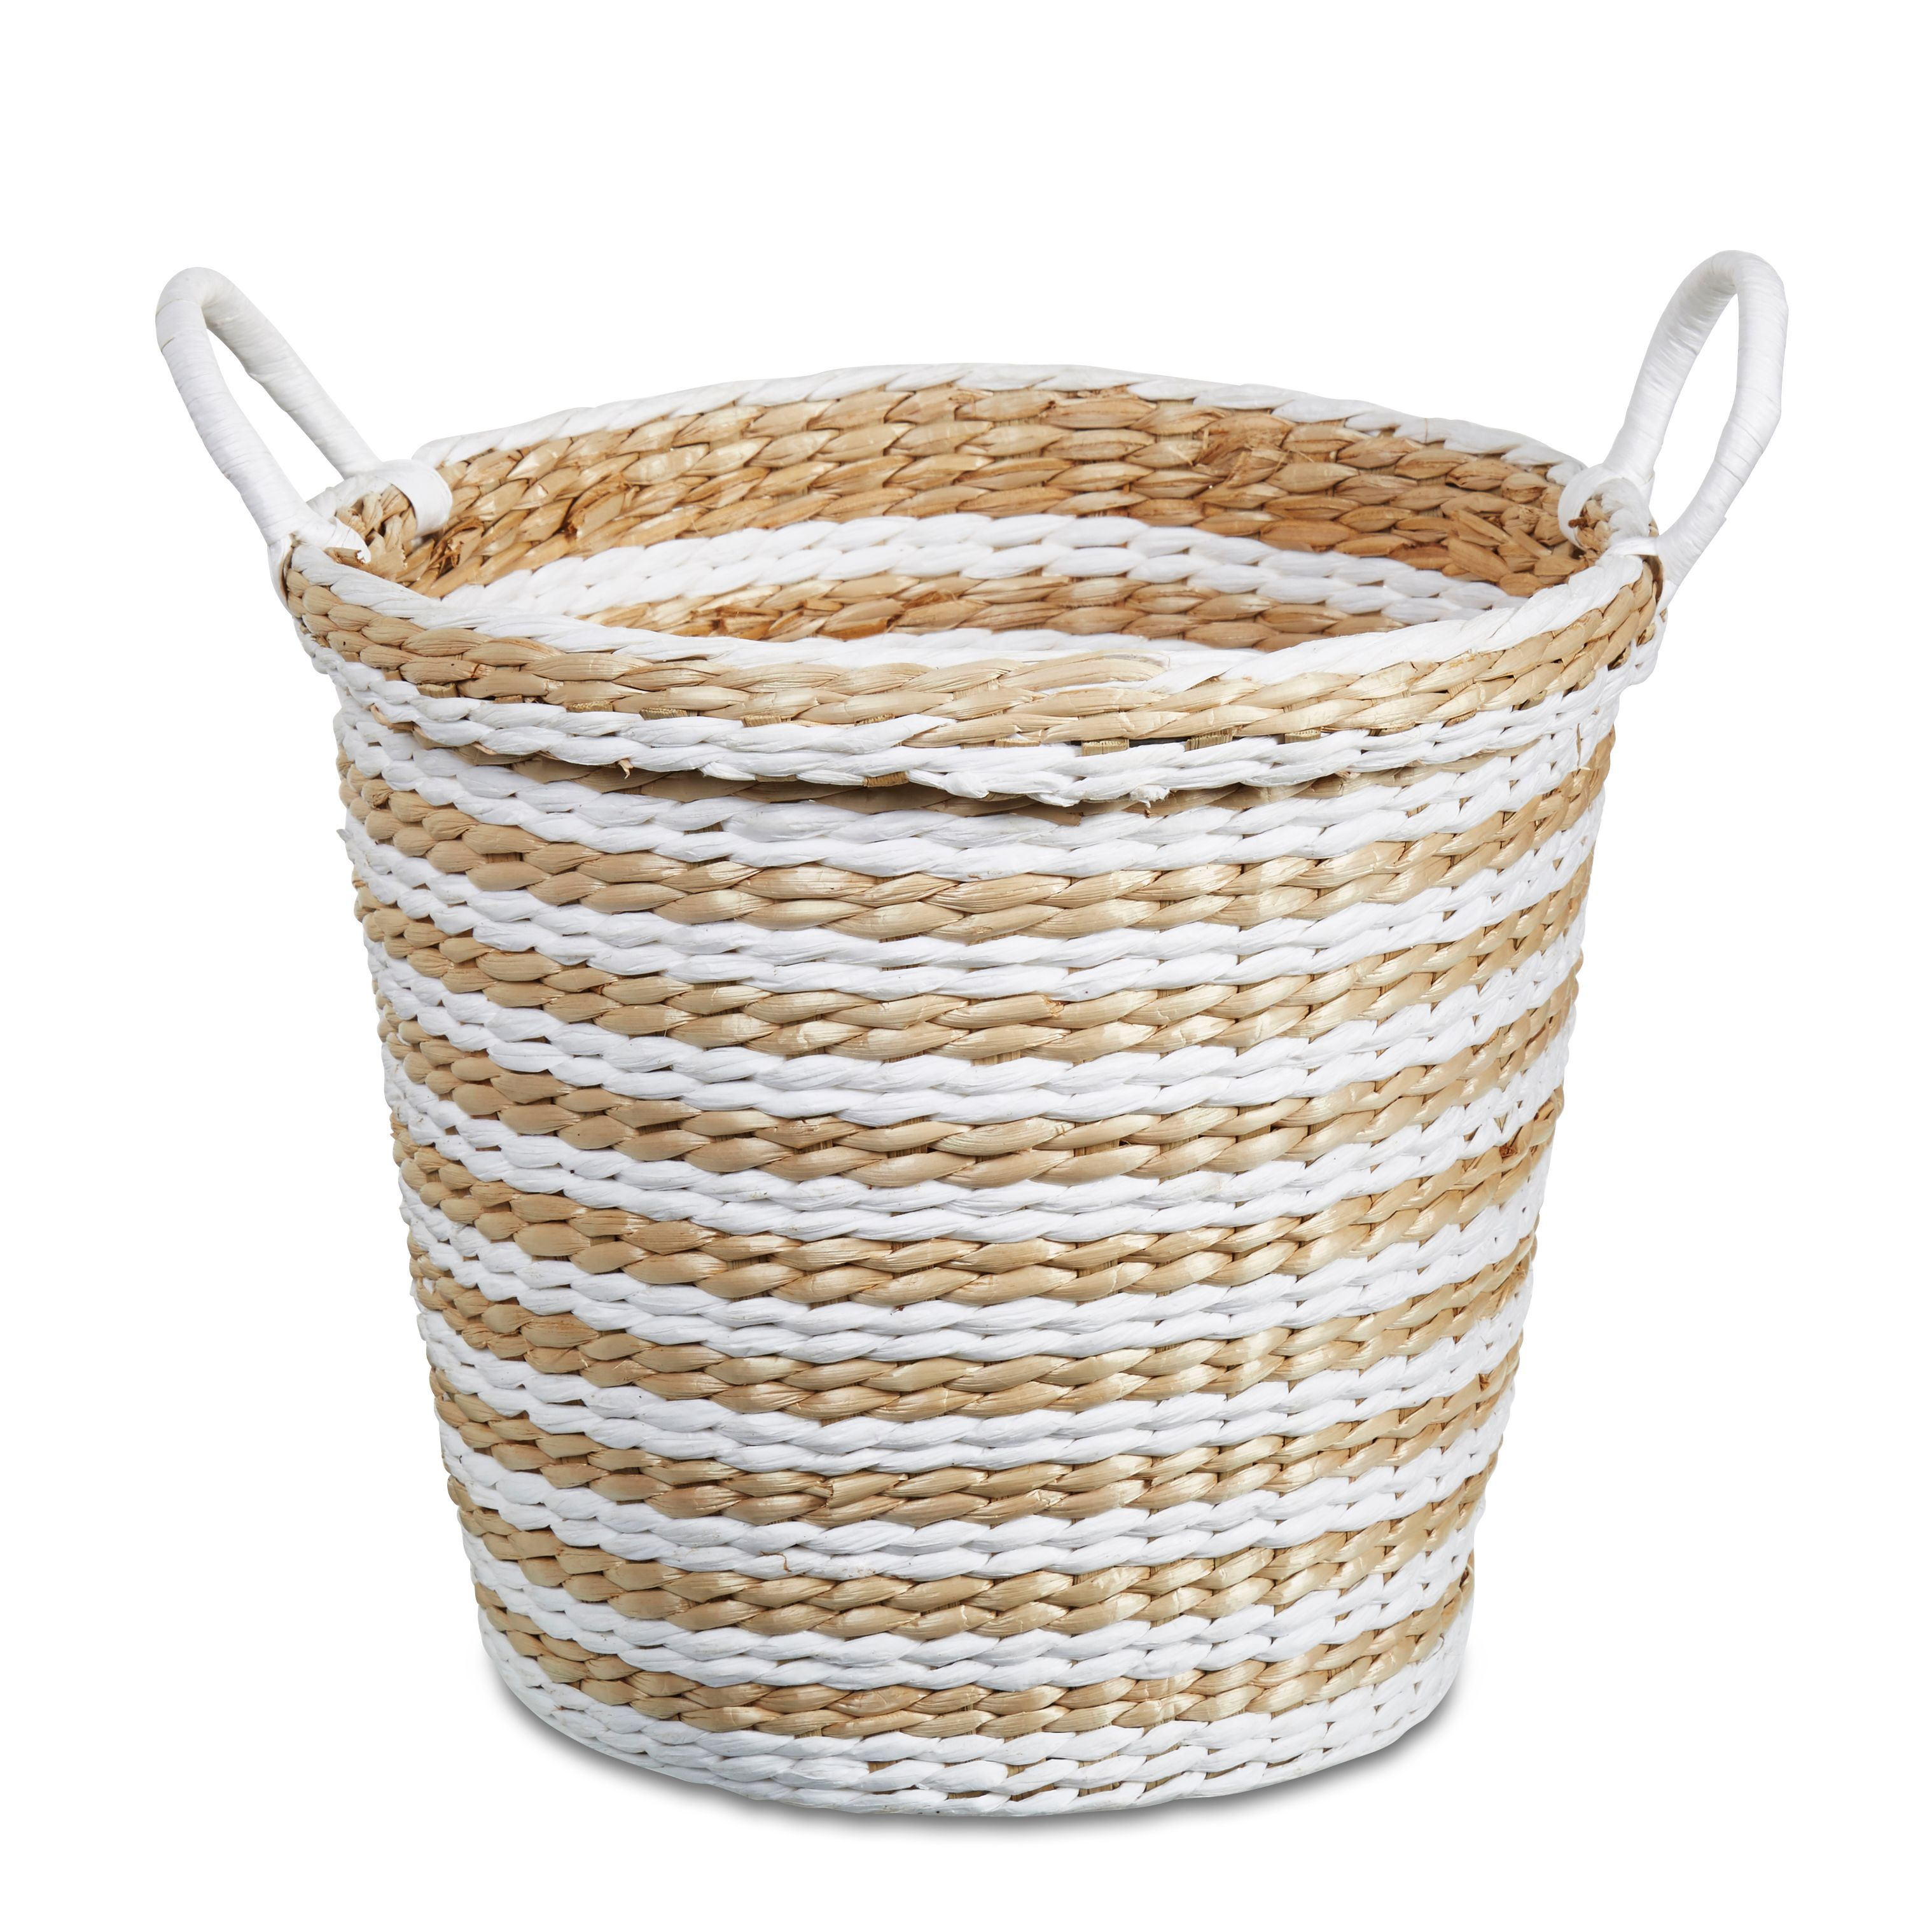 Striped Straw Basket